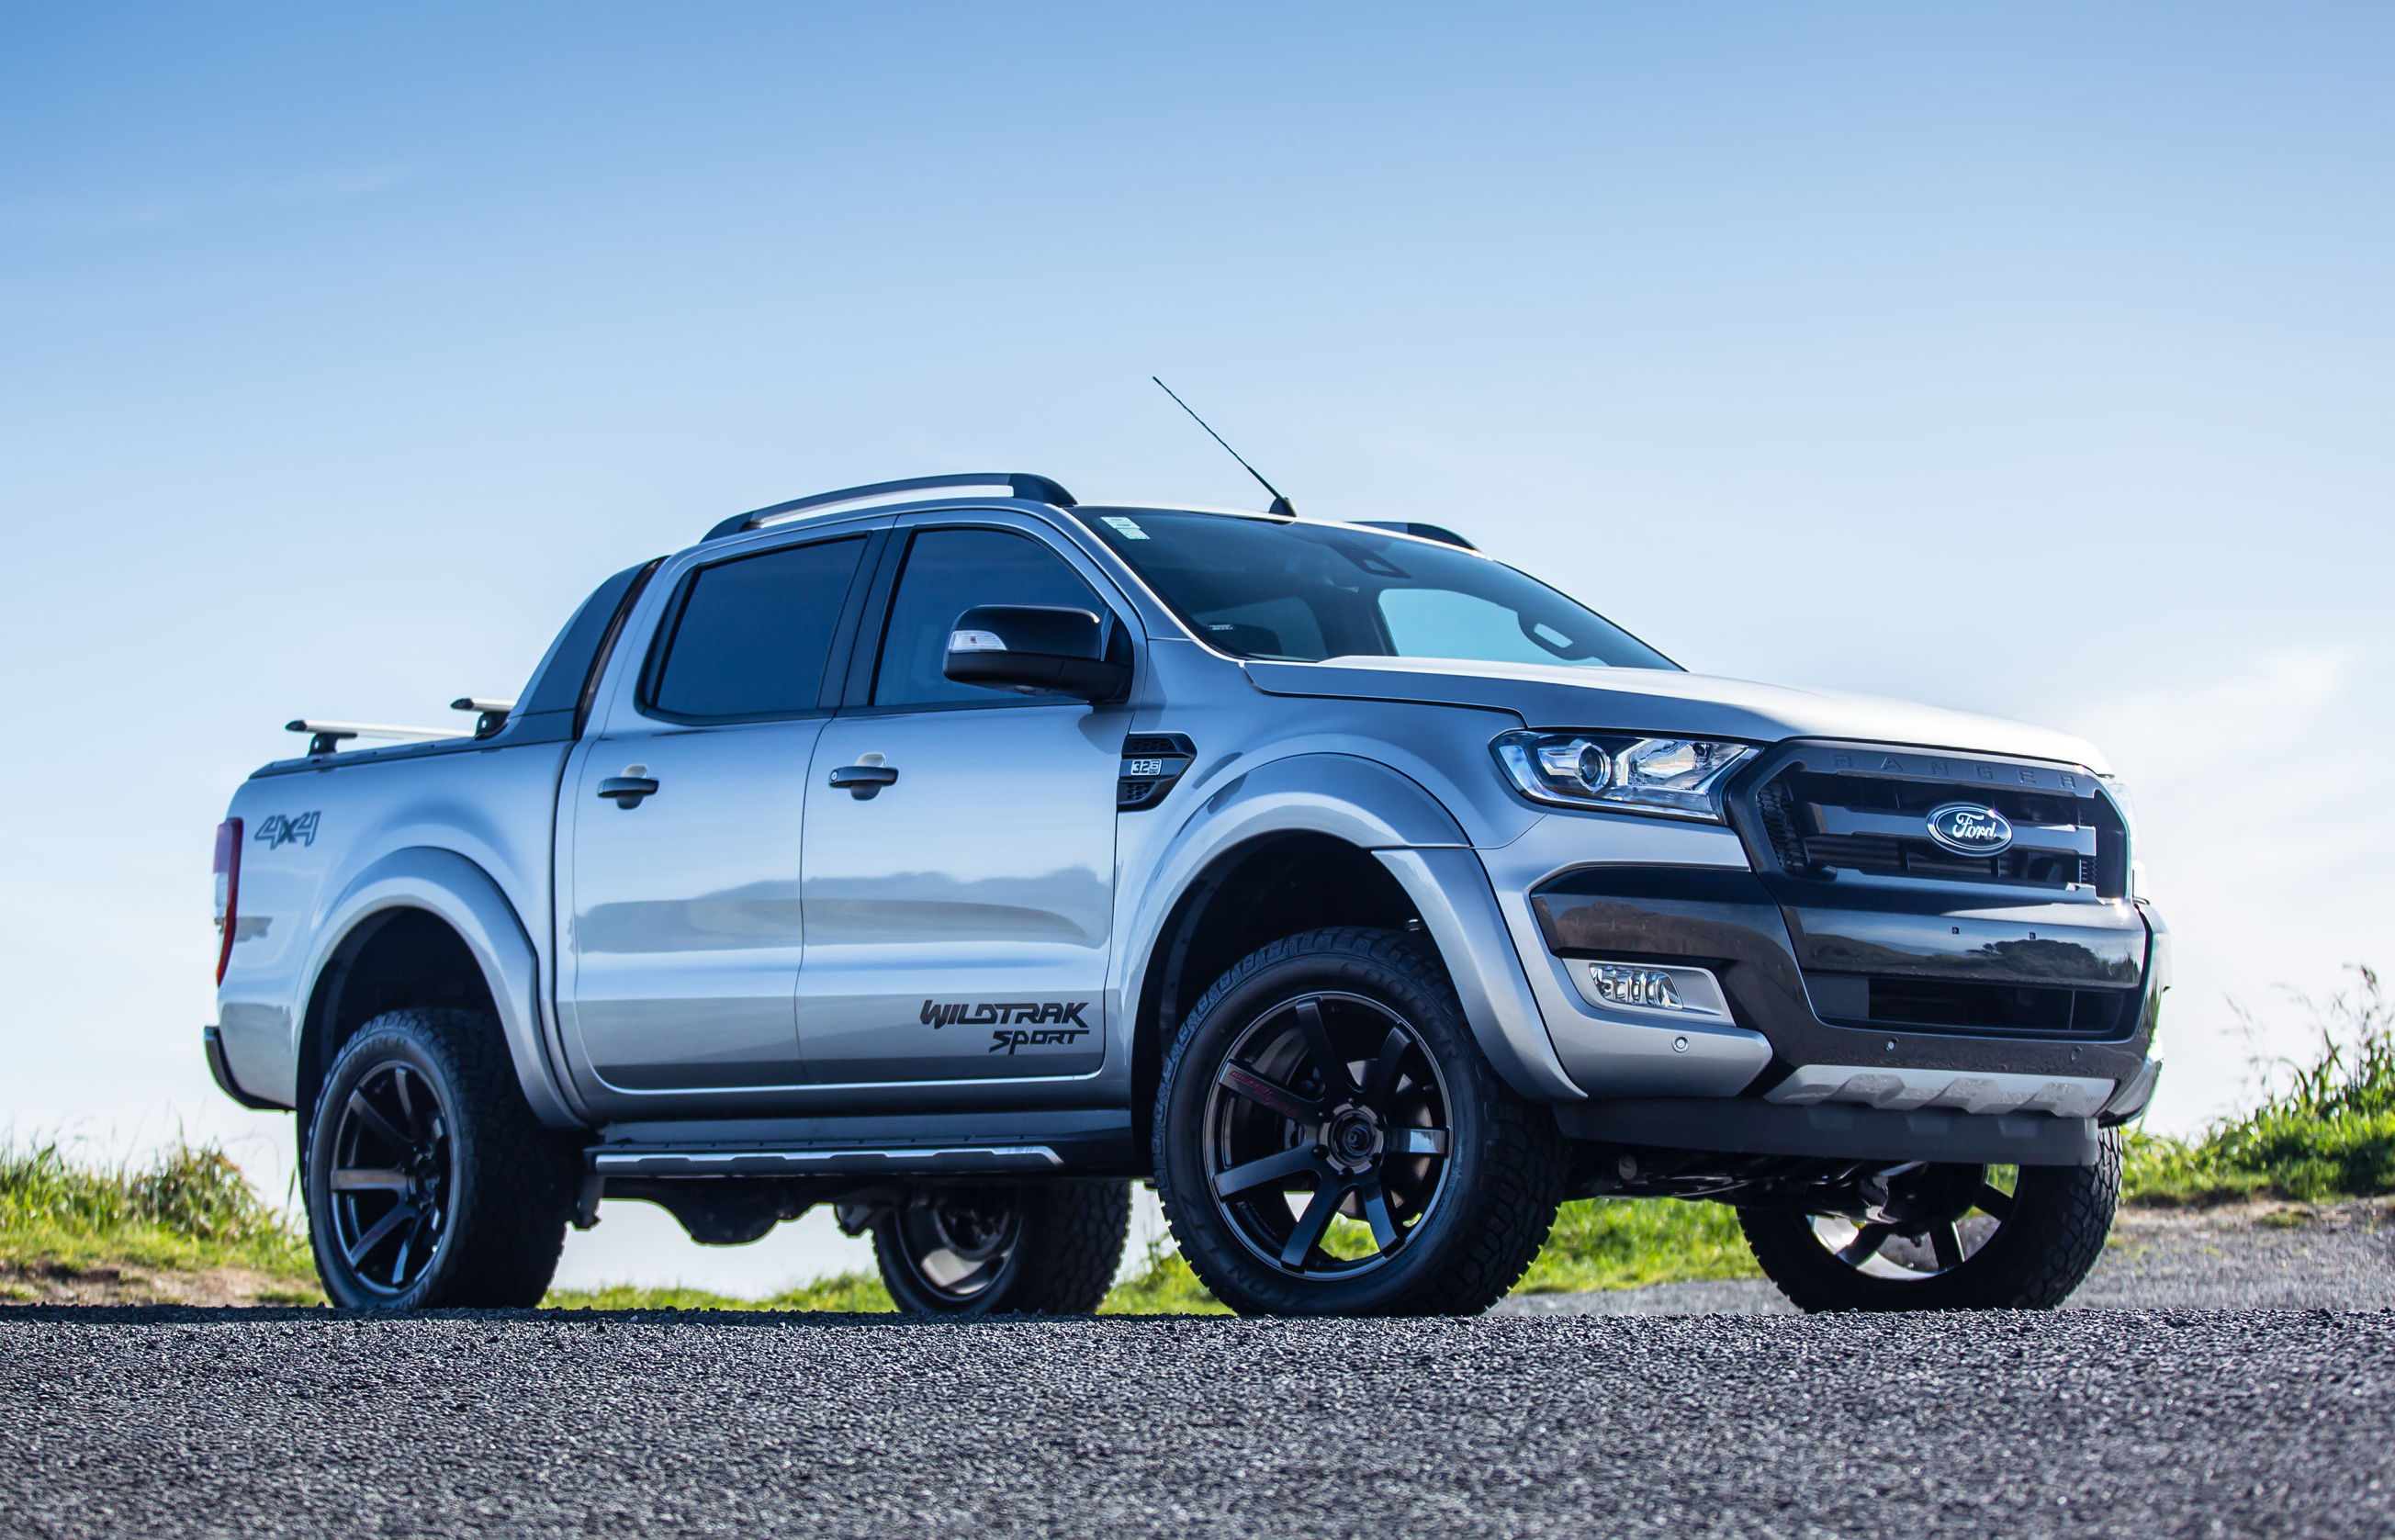 Personalise your Ranger